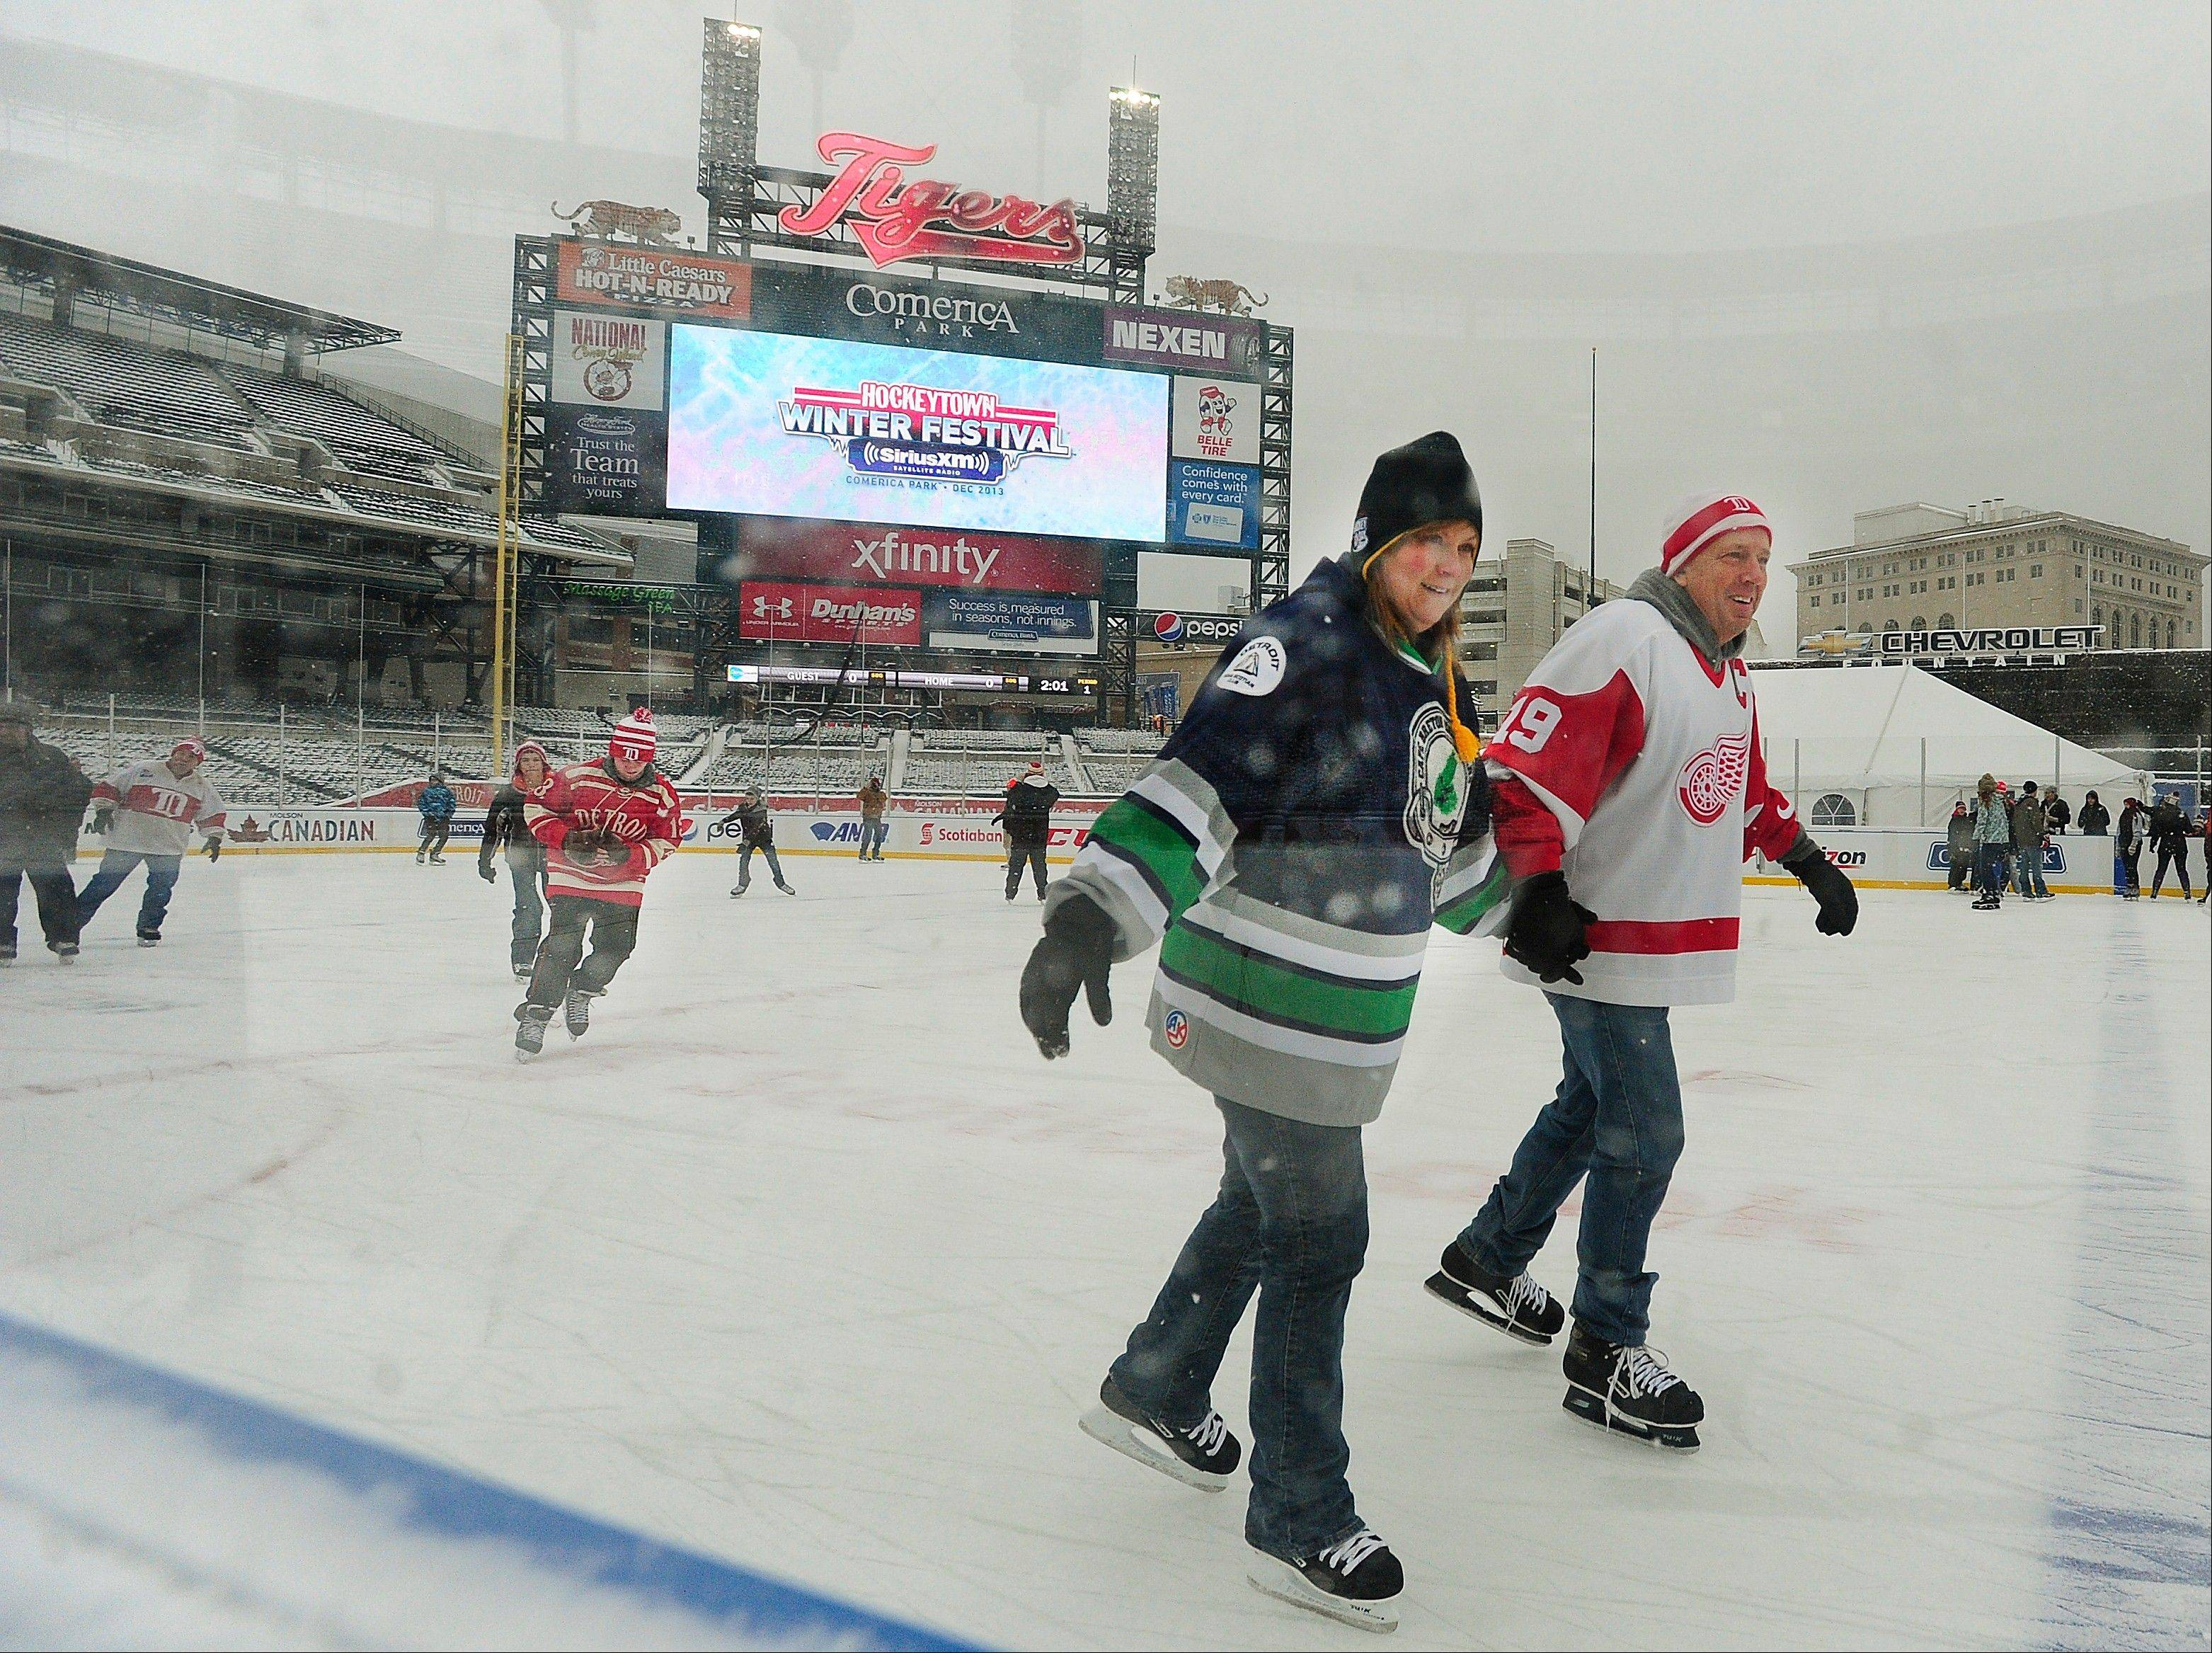 The cold that hovered over much of the country wasn't all hardship Sunday. From left, Valerie MacIsaac and Joseph Grutza skate at Comerica Park in Detroit.